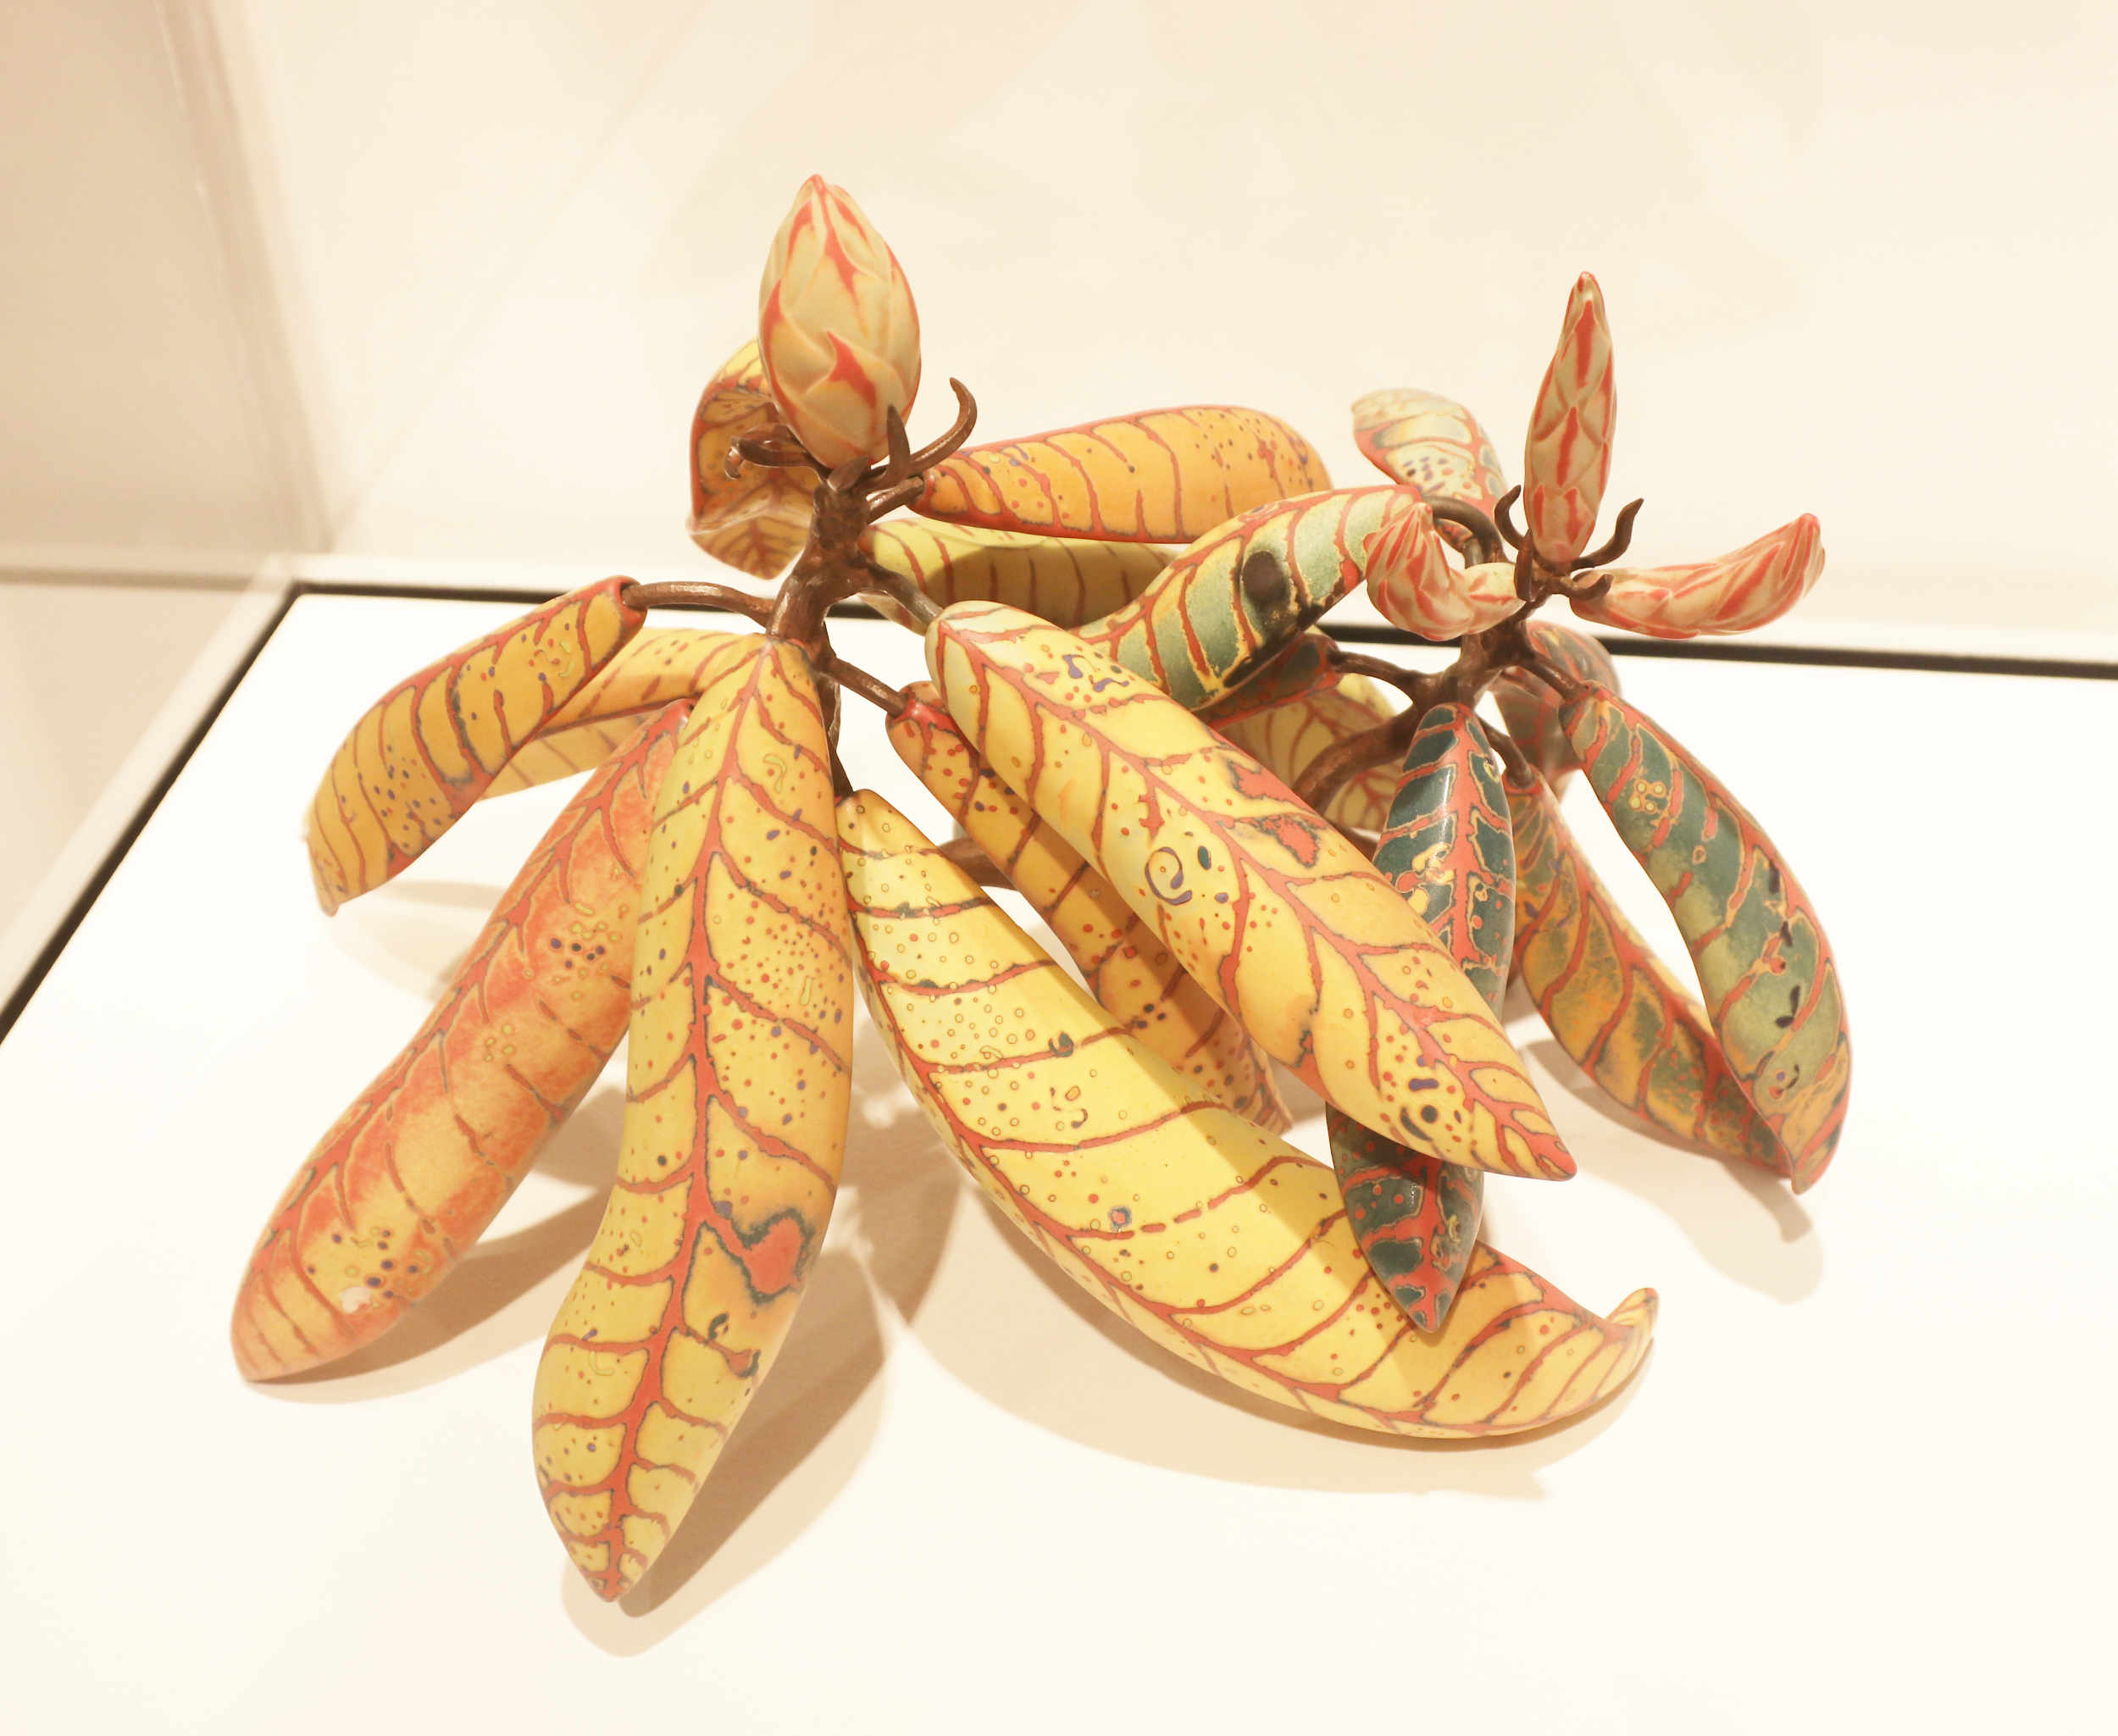 Michael Sherrill, Yellowstone Rhododendron, 2000. Porcelain, glaze, steel.